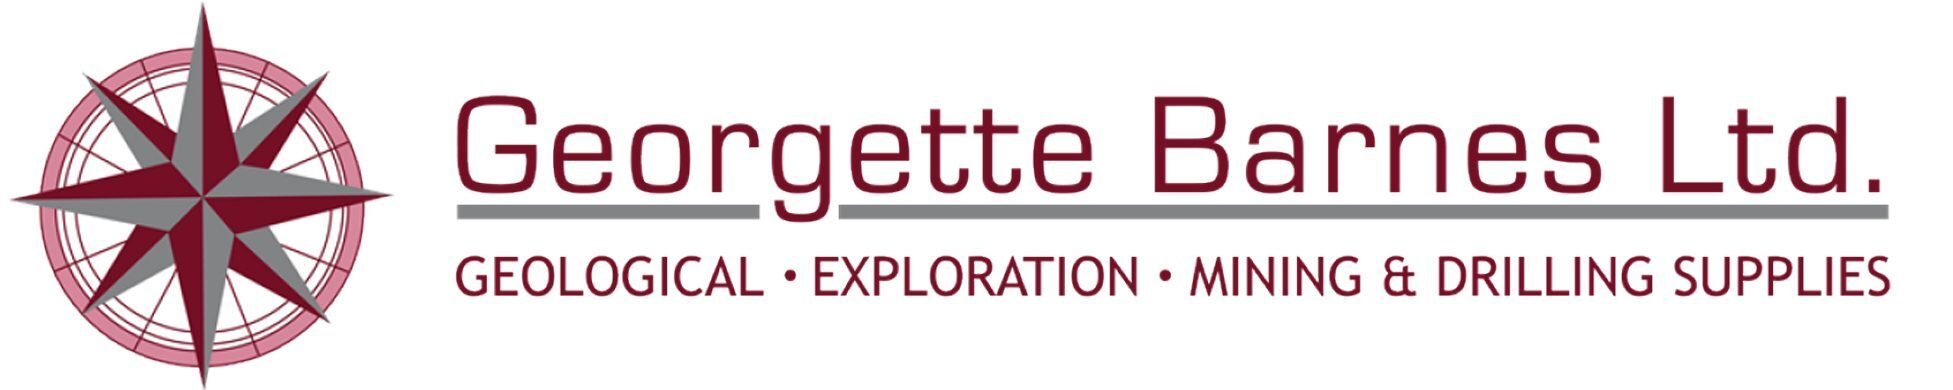 Georgette Barnes Ltd.